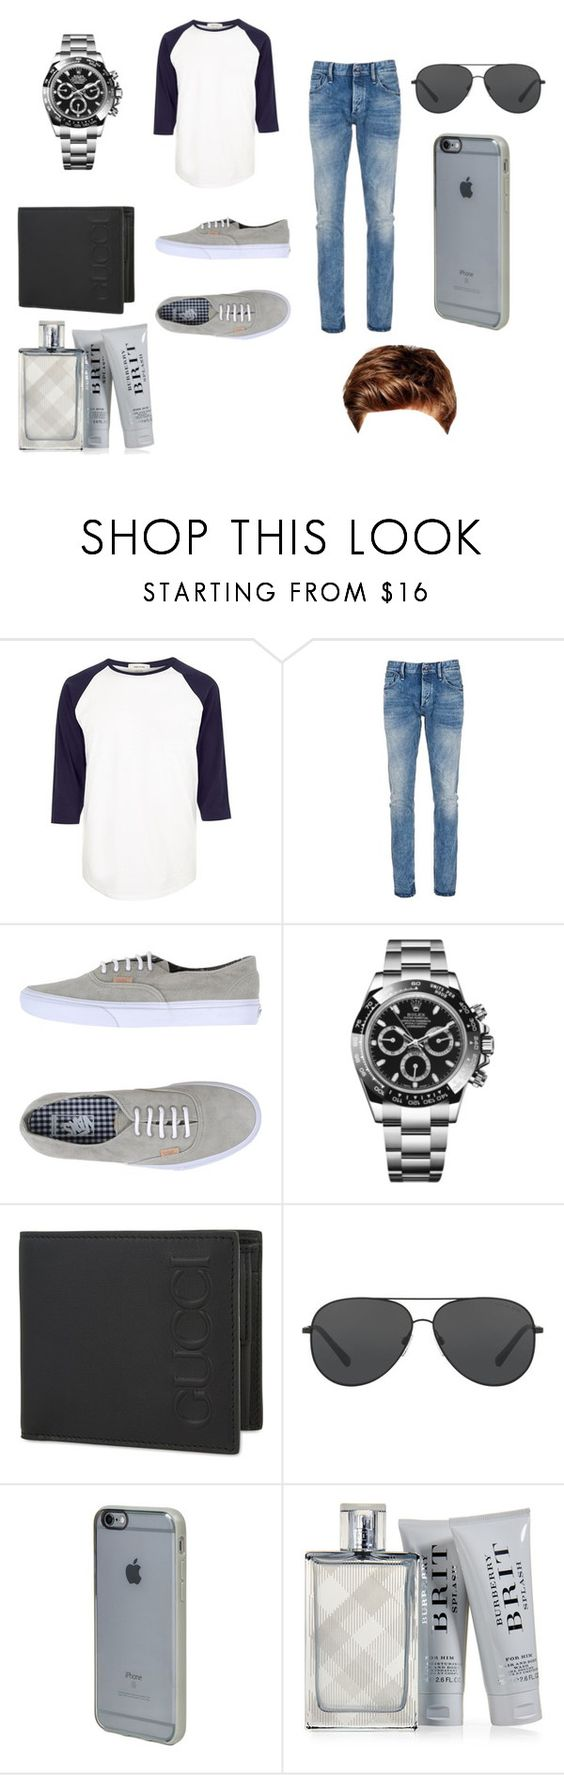 """""""First Day Of School BF Vision"""" by fashionistagirl9898 on Polyvore featuring River Island, Denham, Vans, Rolex, Gucci, Michael Kors, Incase, Burberry, Toni&Guy and men's fashion"""